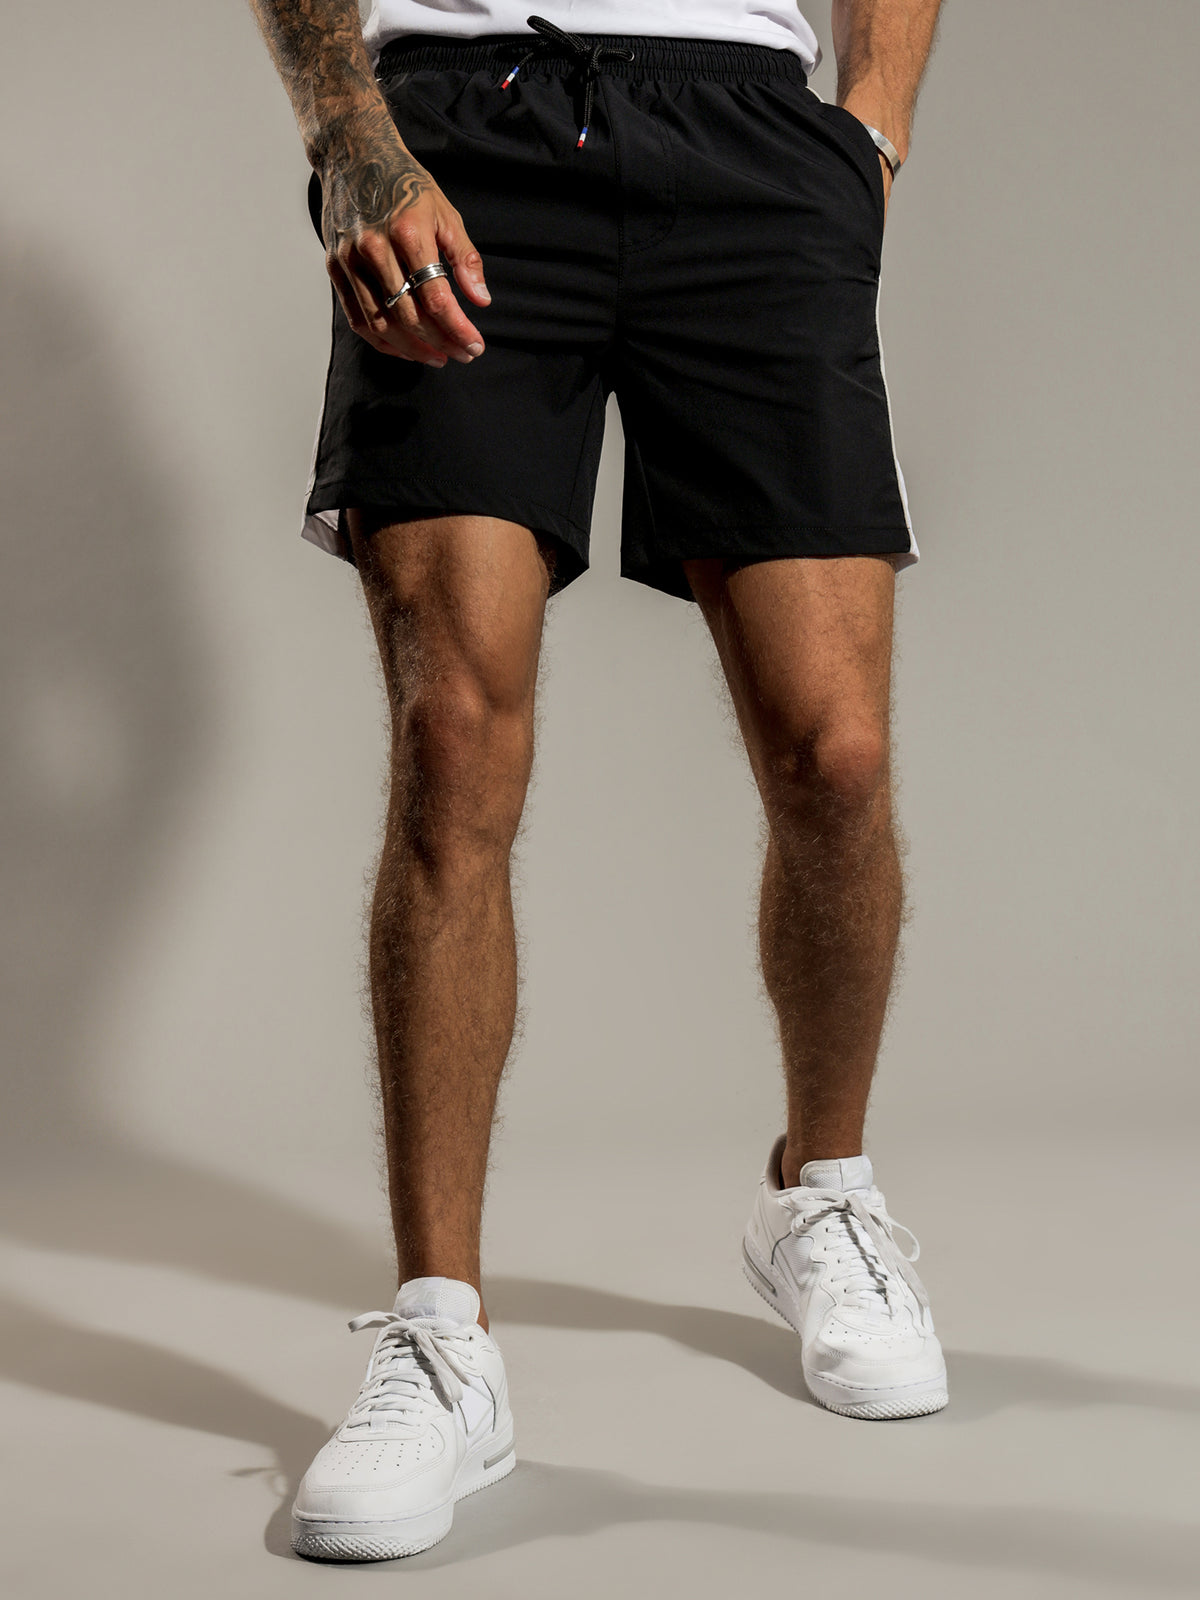 Pigalle Swim Shorts in Black